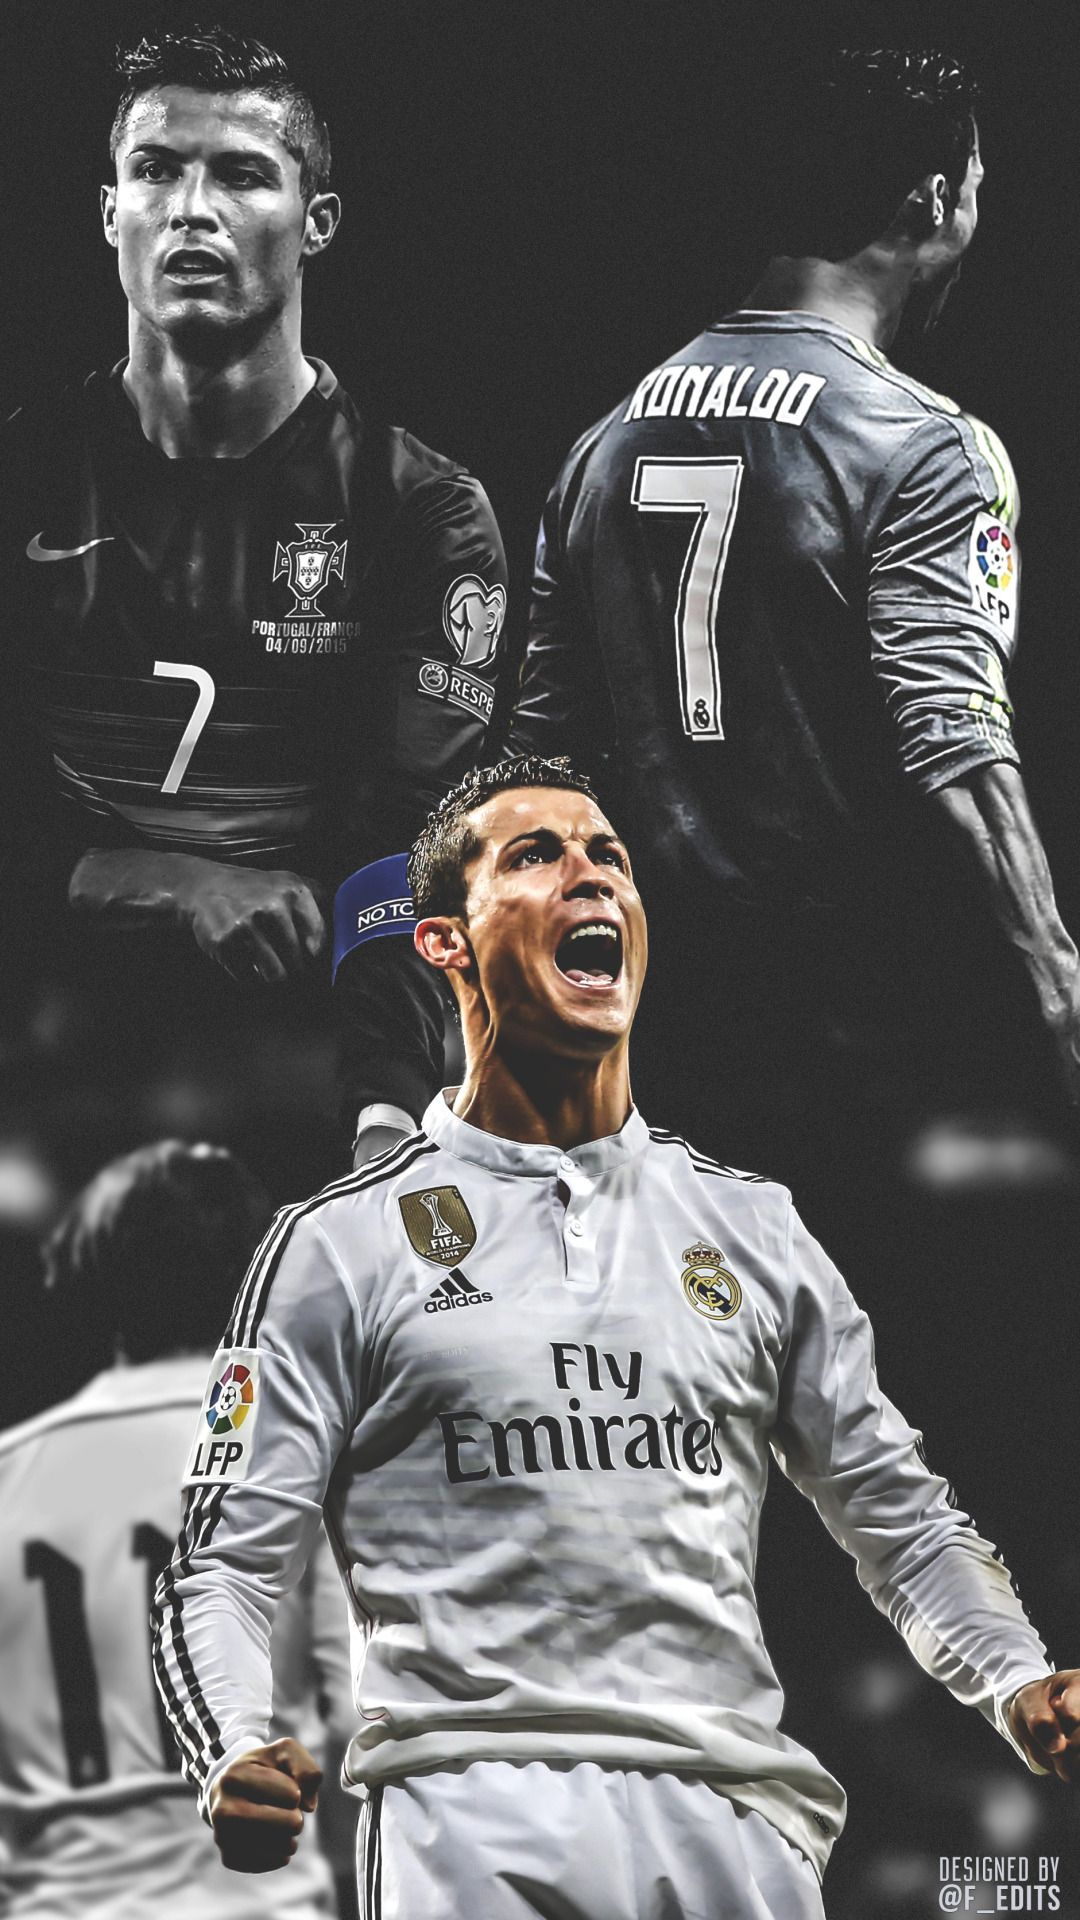 Cristiano Ronaldo Iphone Wallpaper Ronaldo Wallpapers Cristiano Ronaldo Wallpapers Ronaldo Soccer